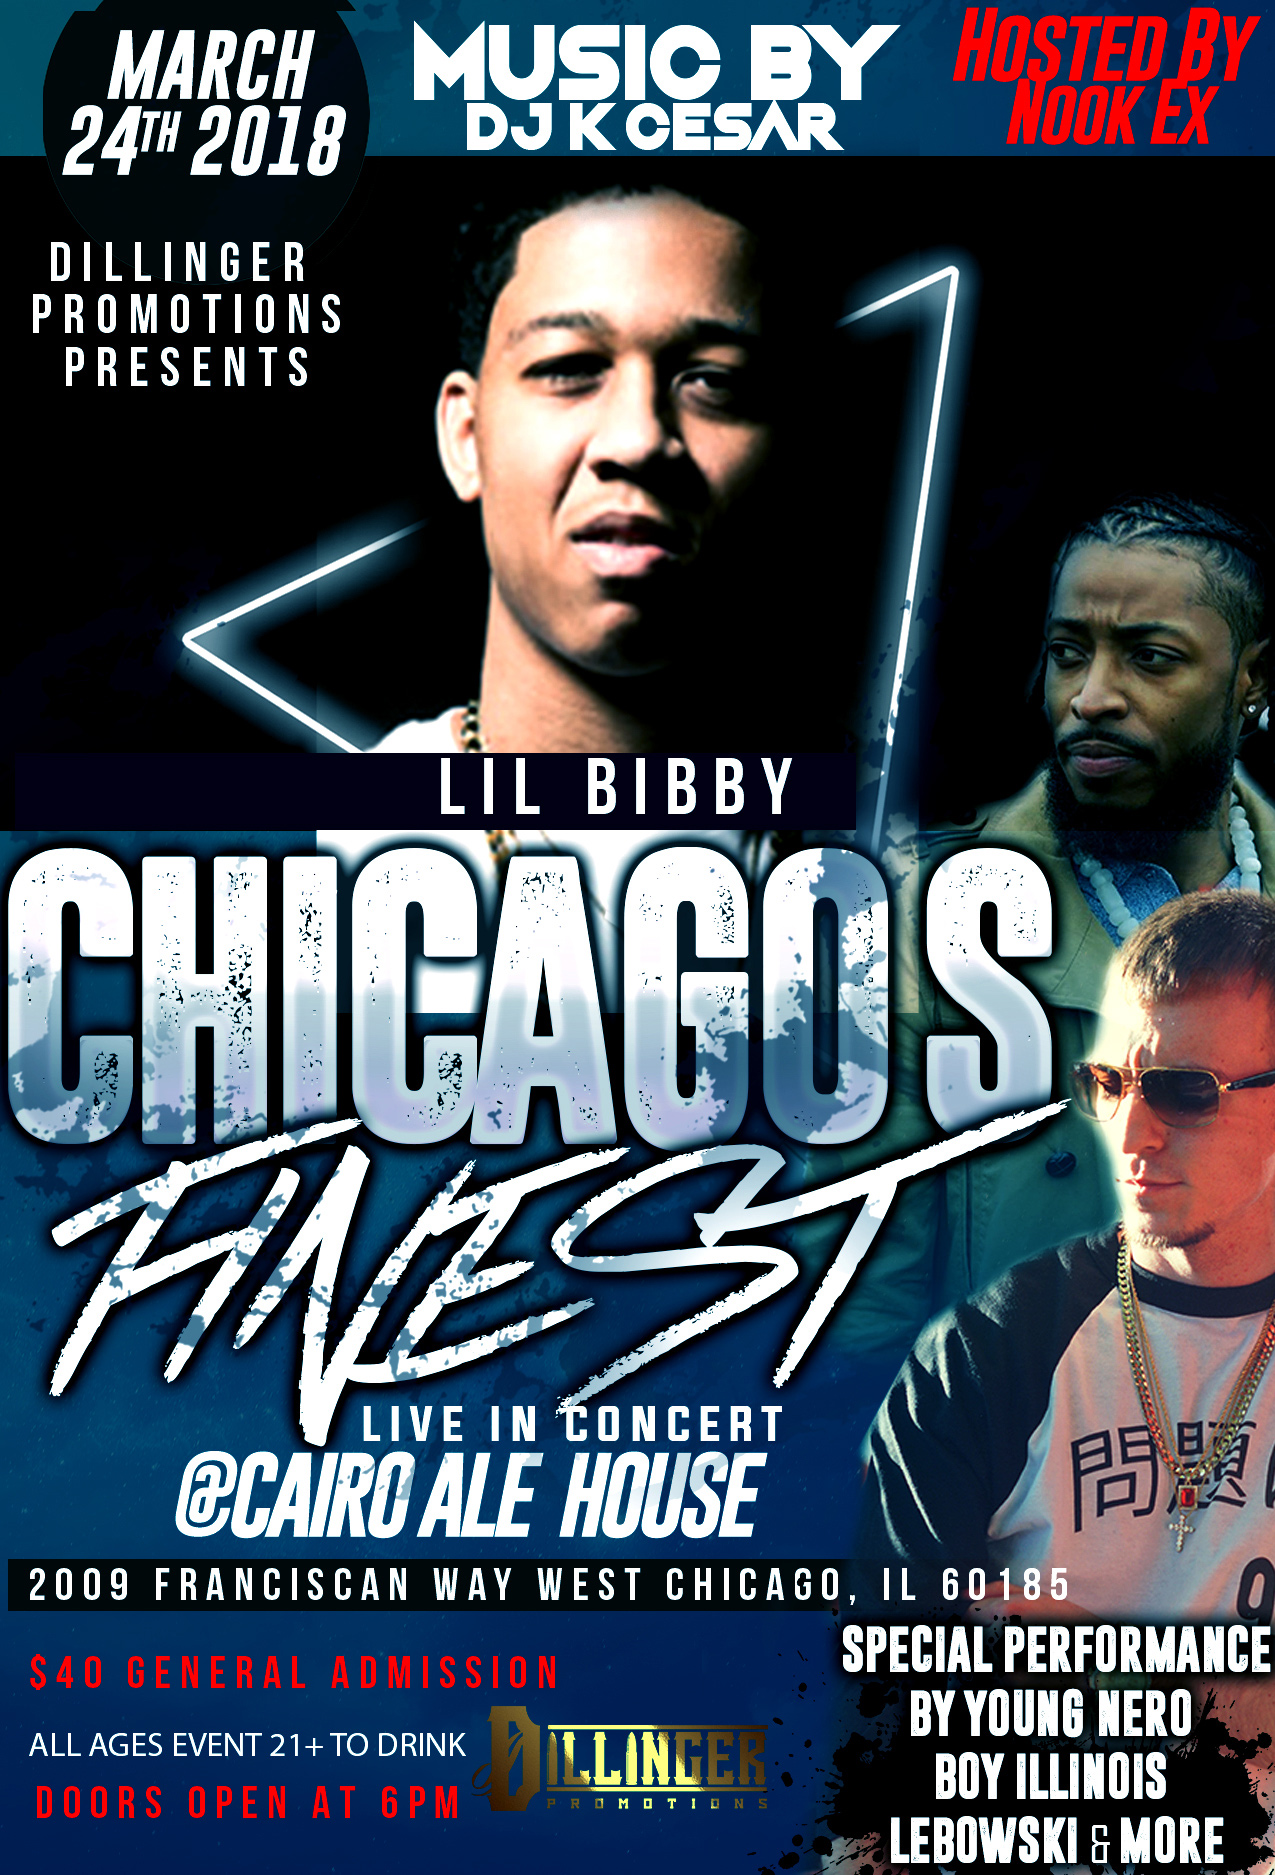 Lil bibby tour dates in Melbourne